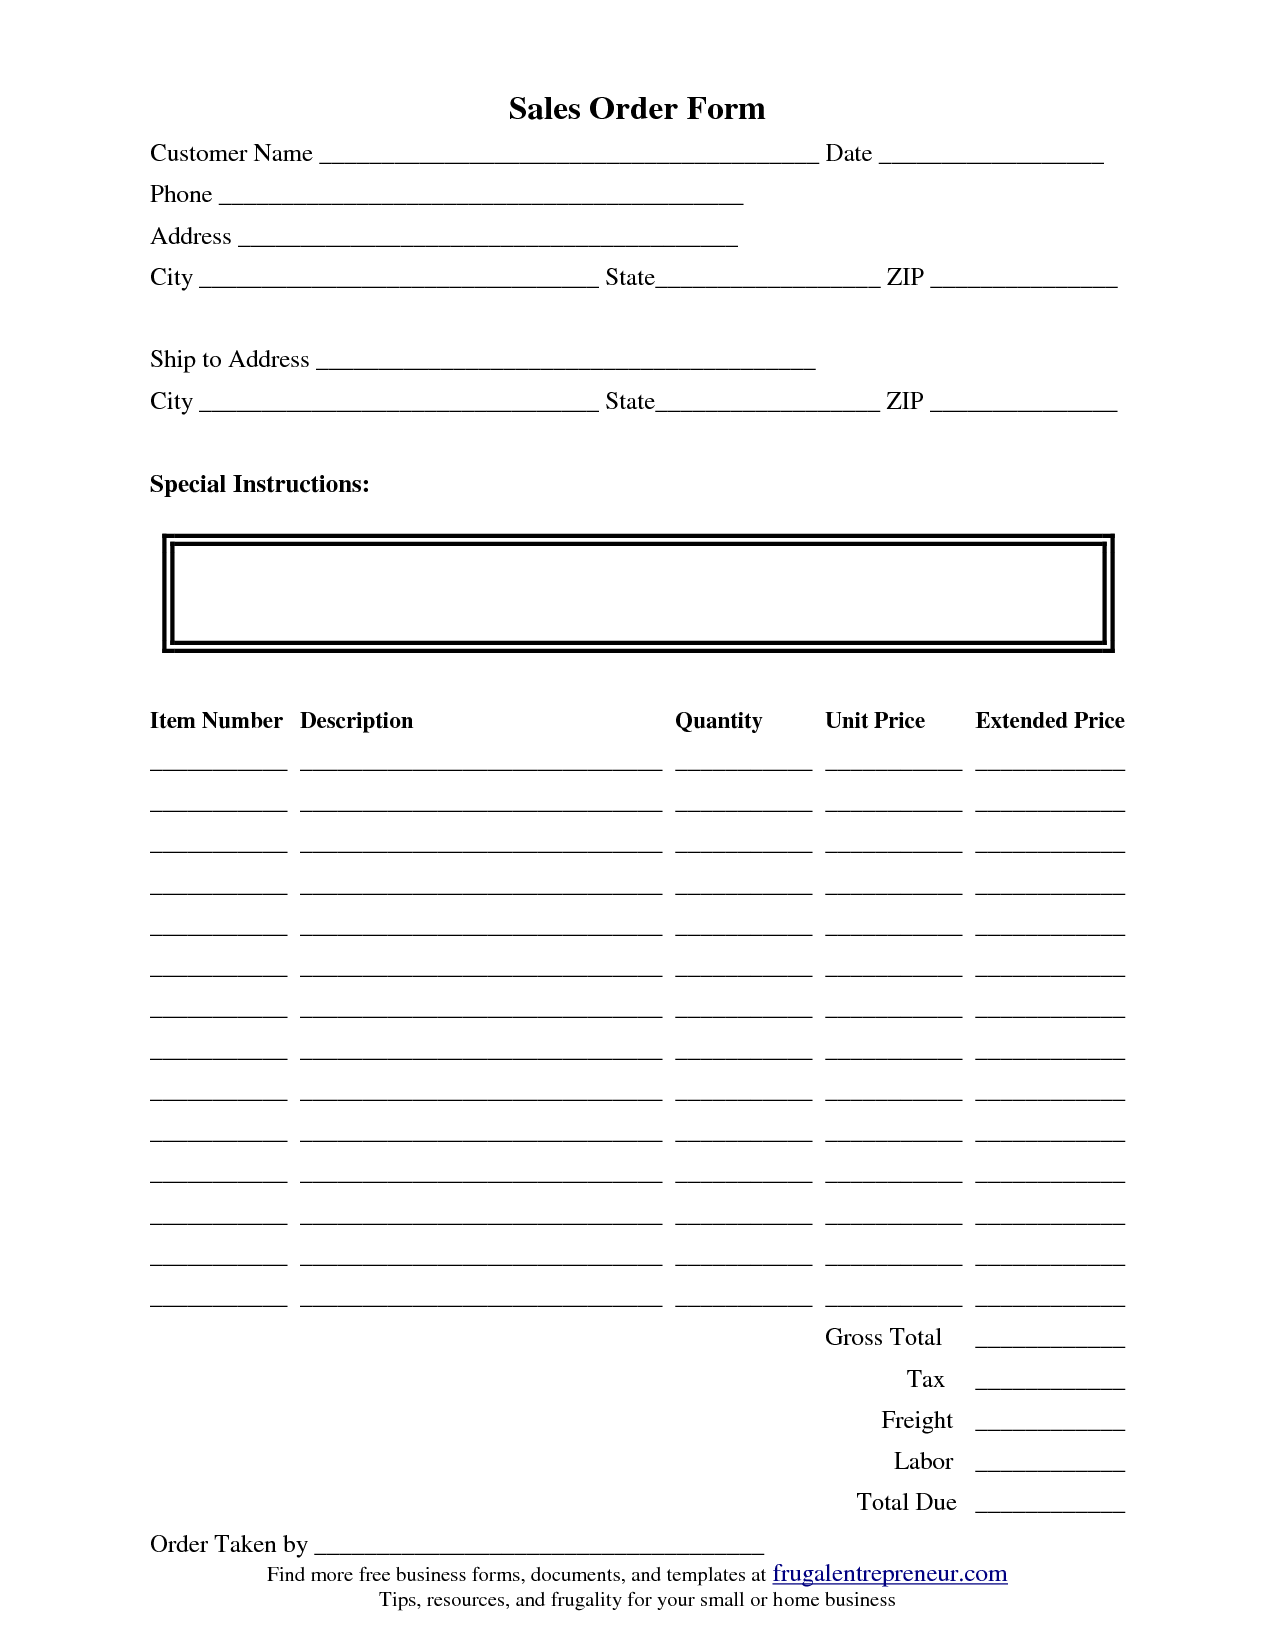 scope of work template order form pinterest template order